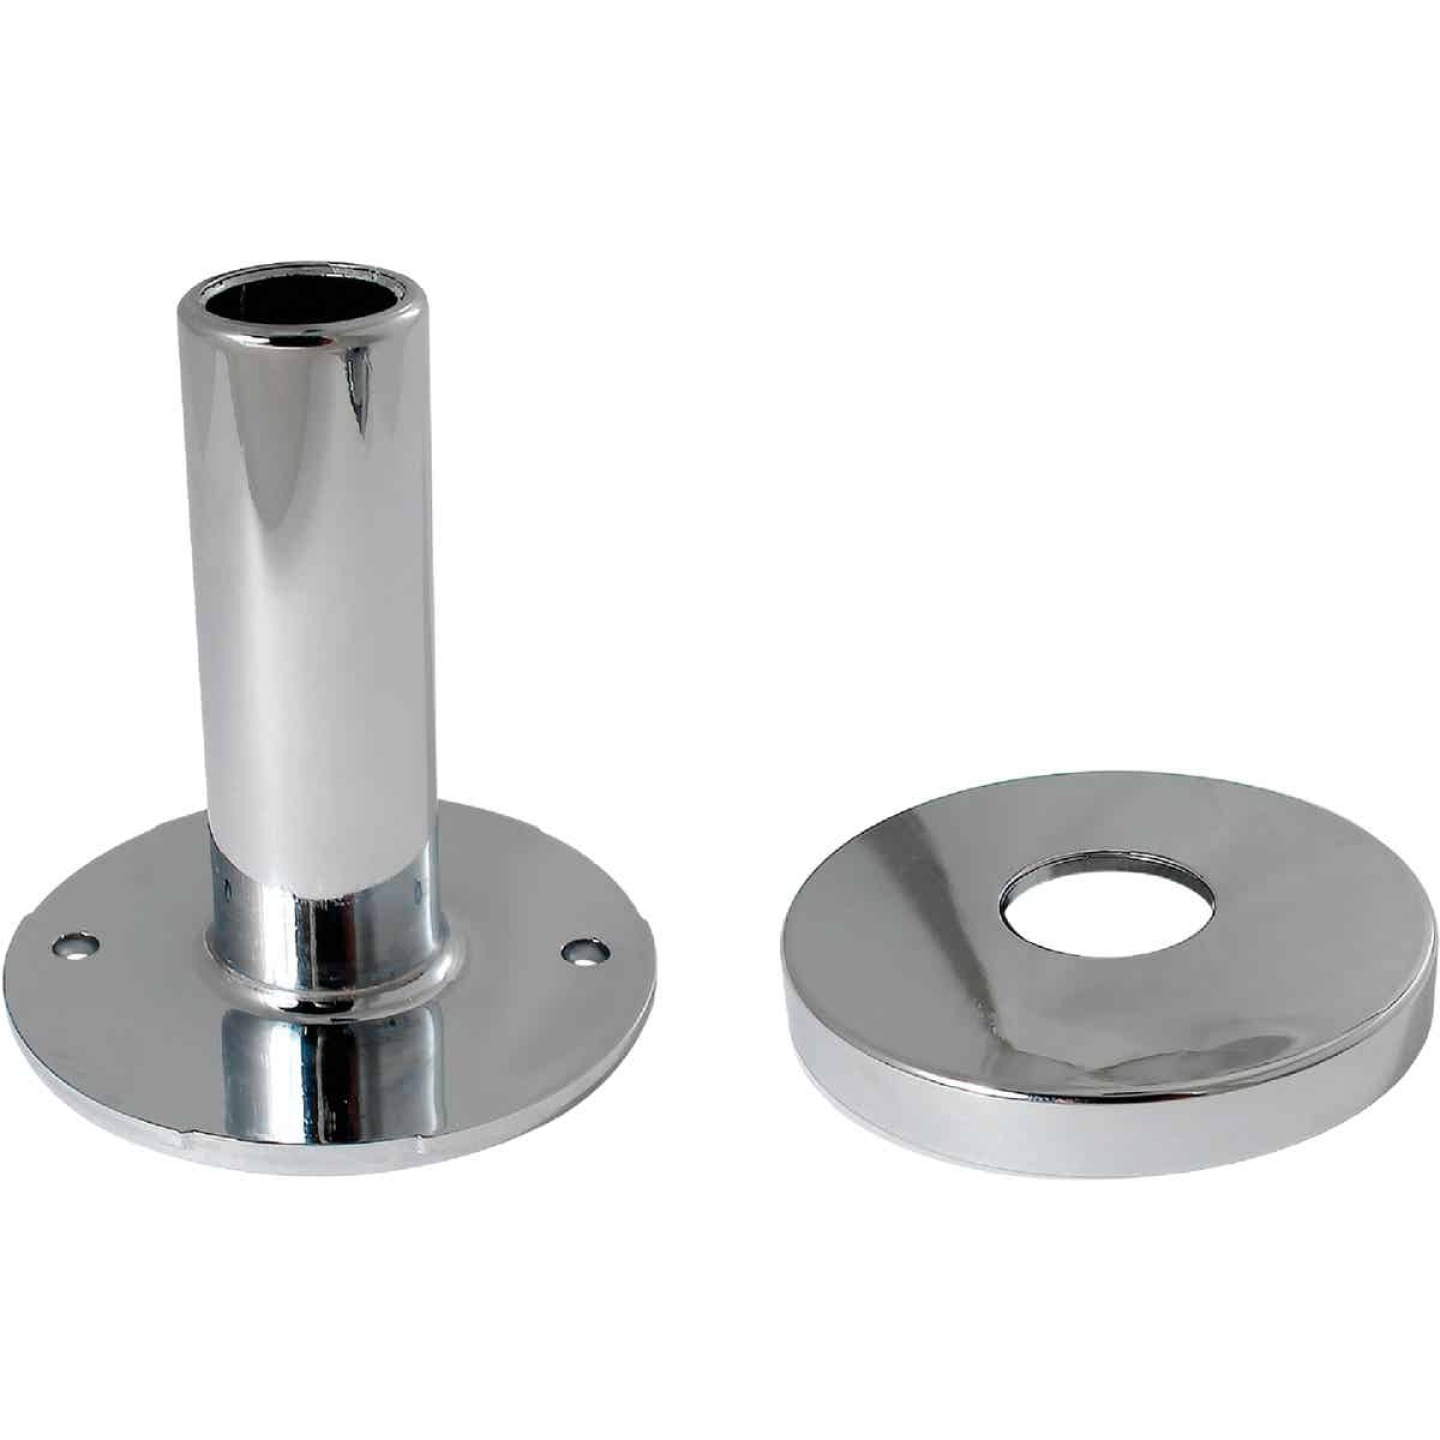 Keeney 1/2 In. Chrome-Plated Pipe Cover Tube and Flange Image 1